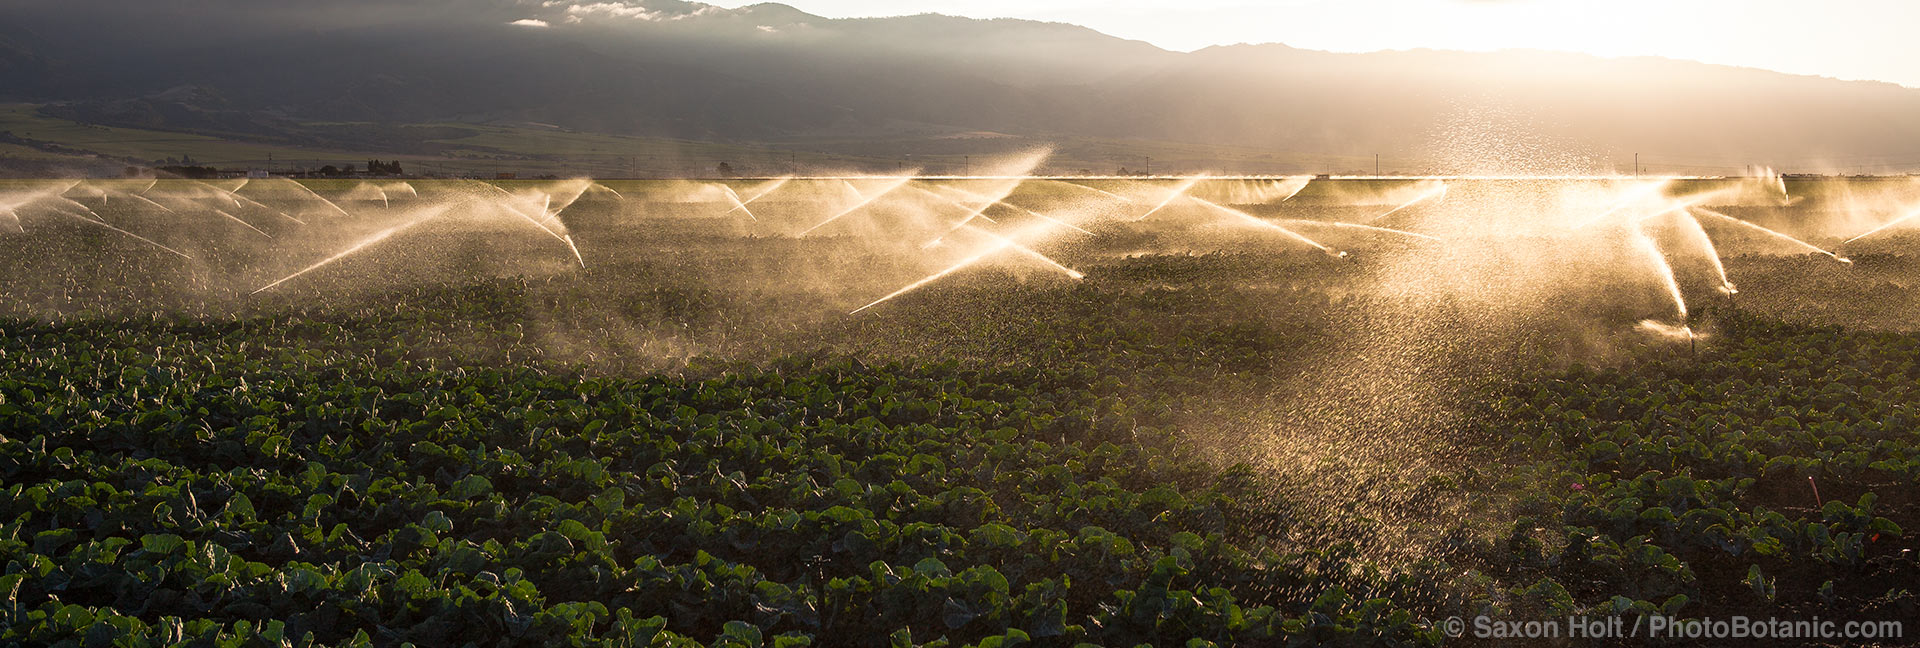 farm irrigation california